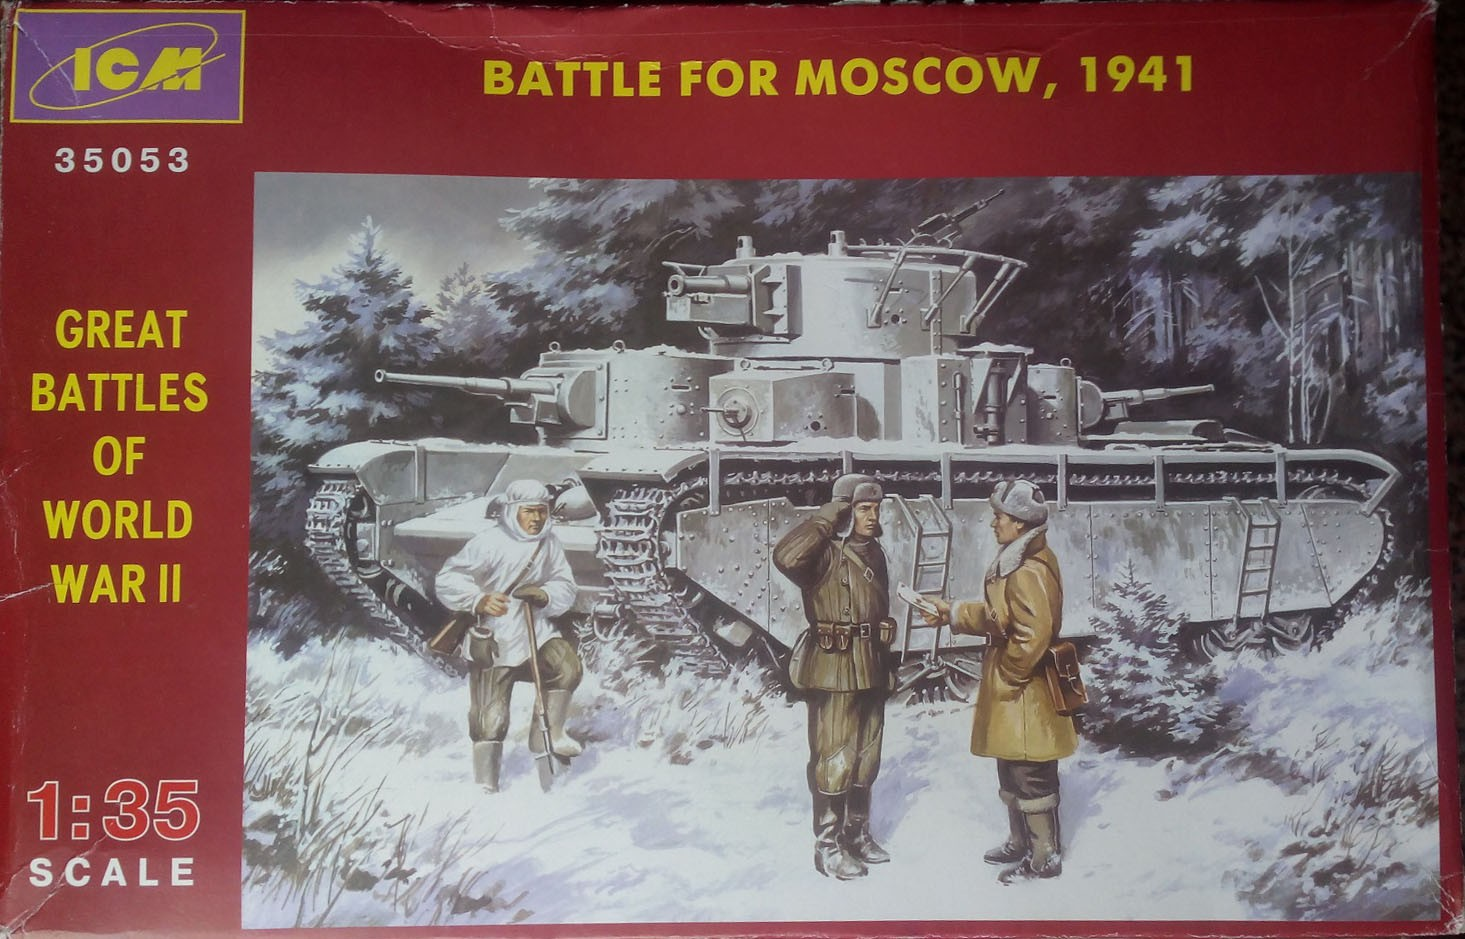 35053 Batle for Moscow, 1941 Image